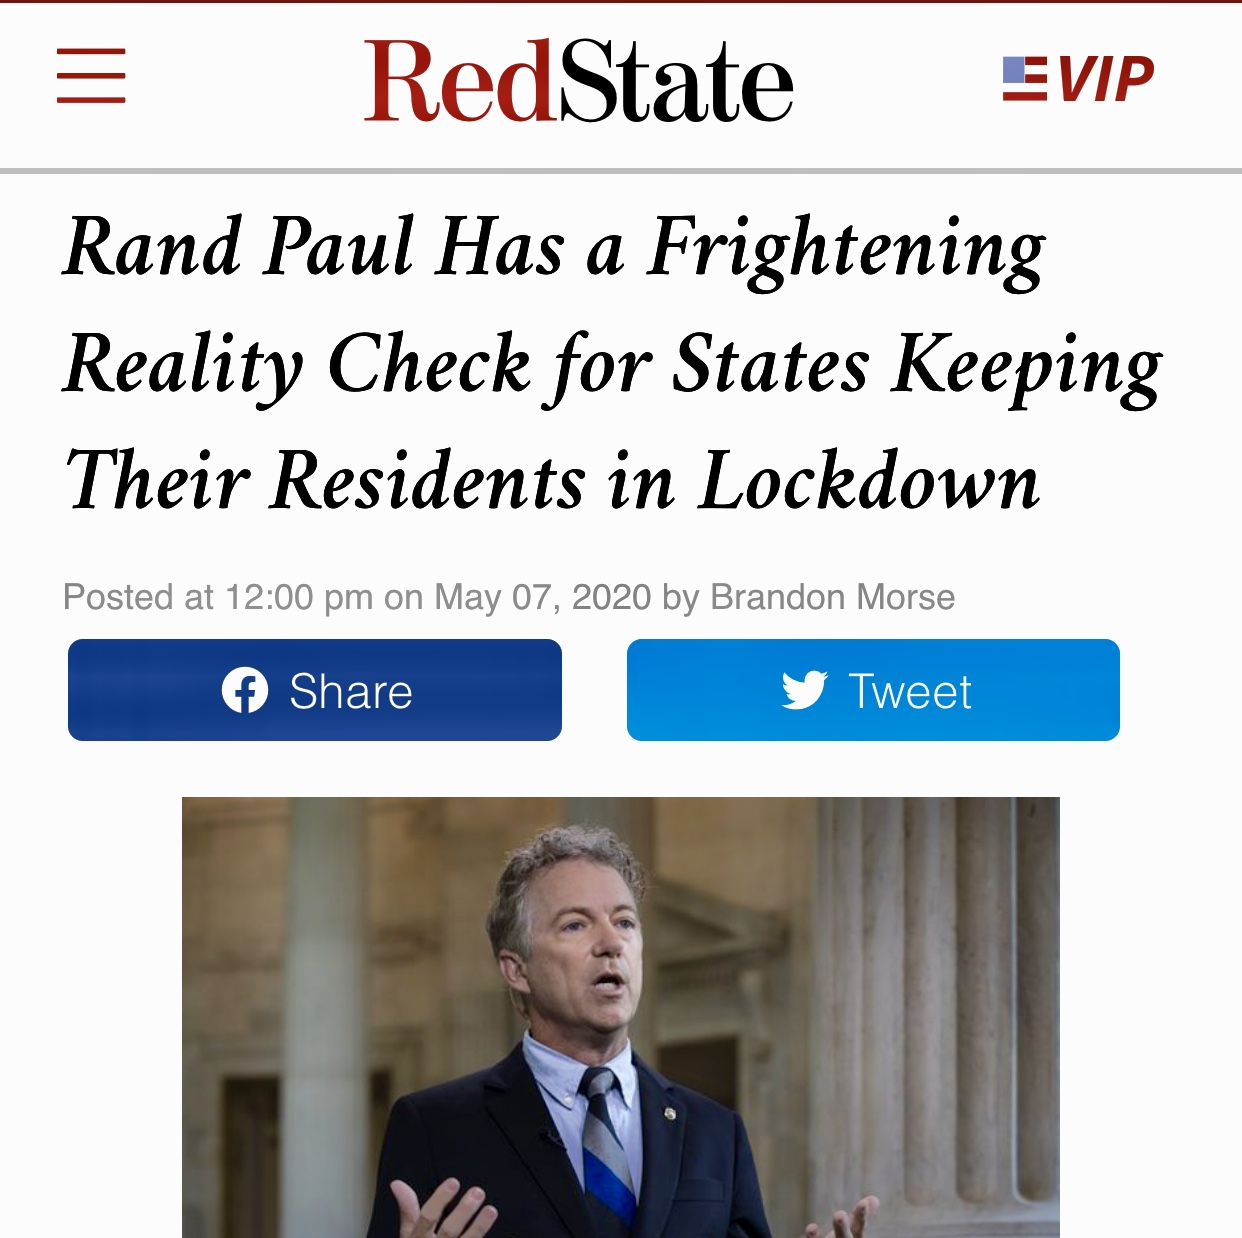 Rand Paul Has a Frightening Reality Check for States Keeping Their Residents in Lockdown